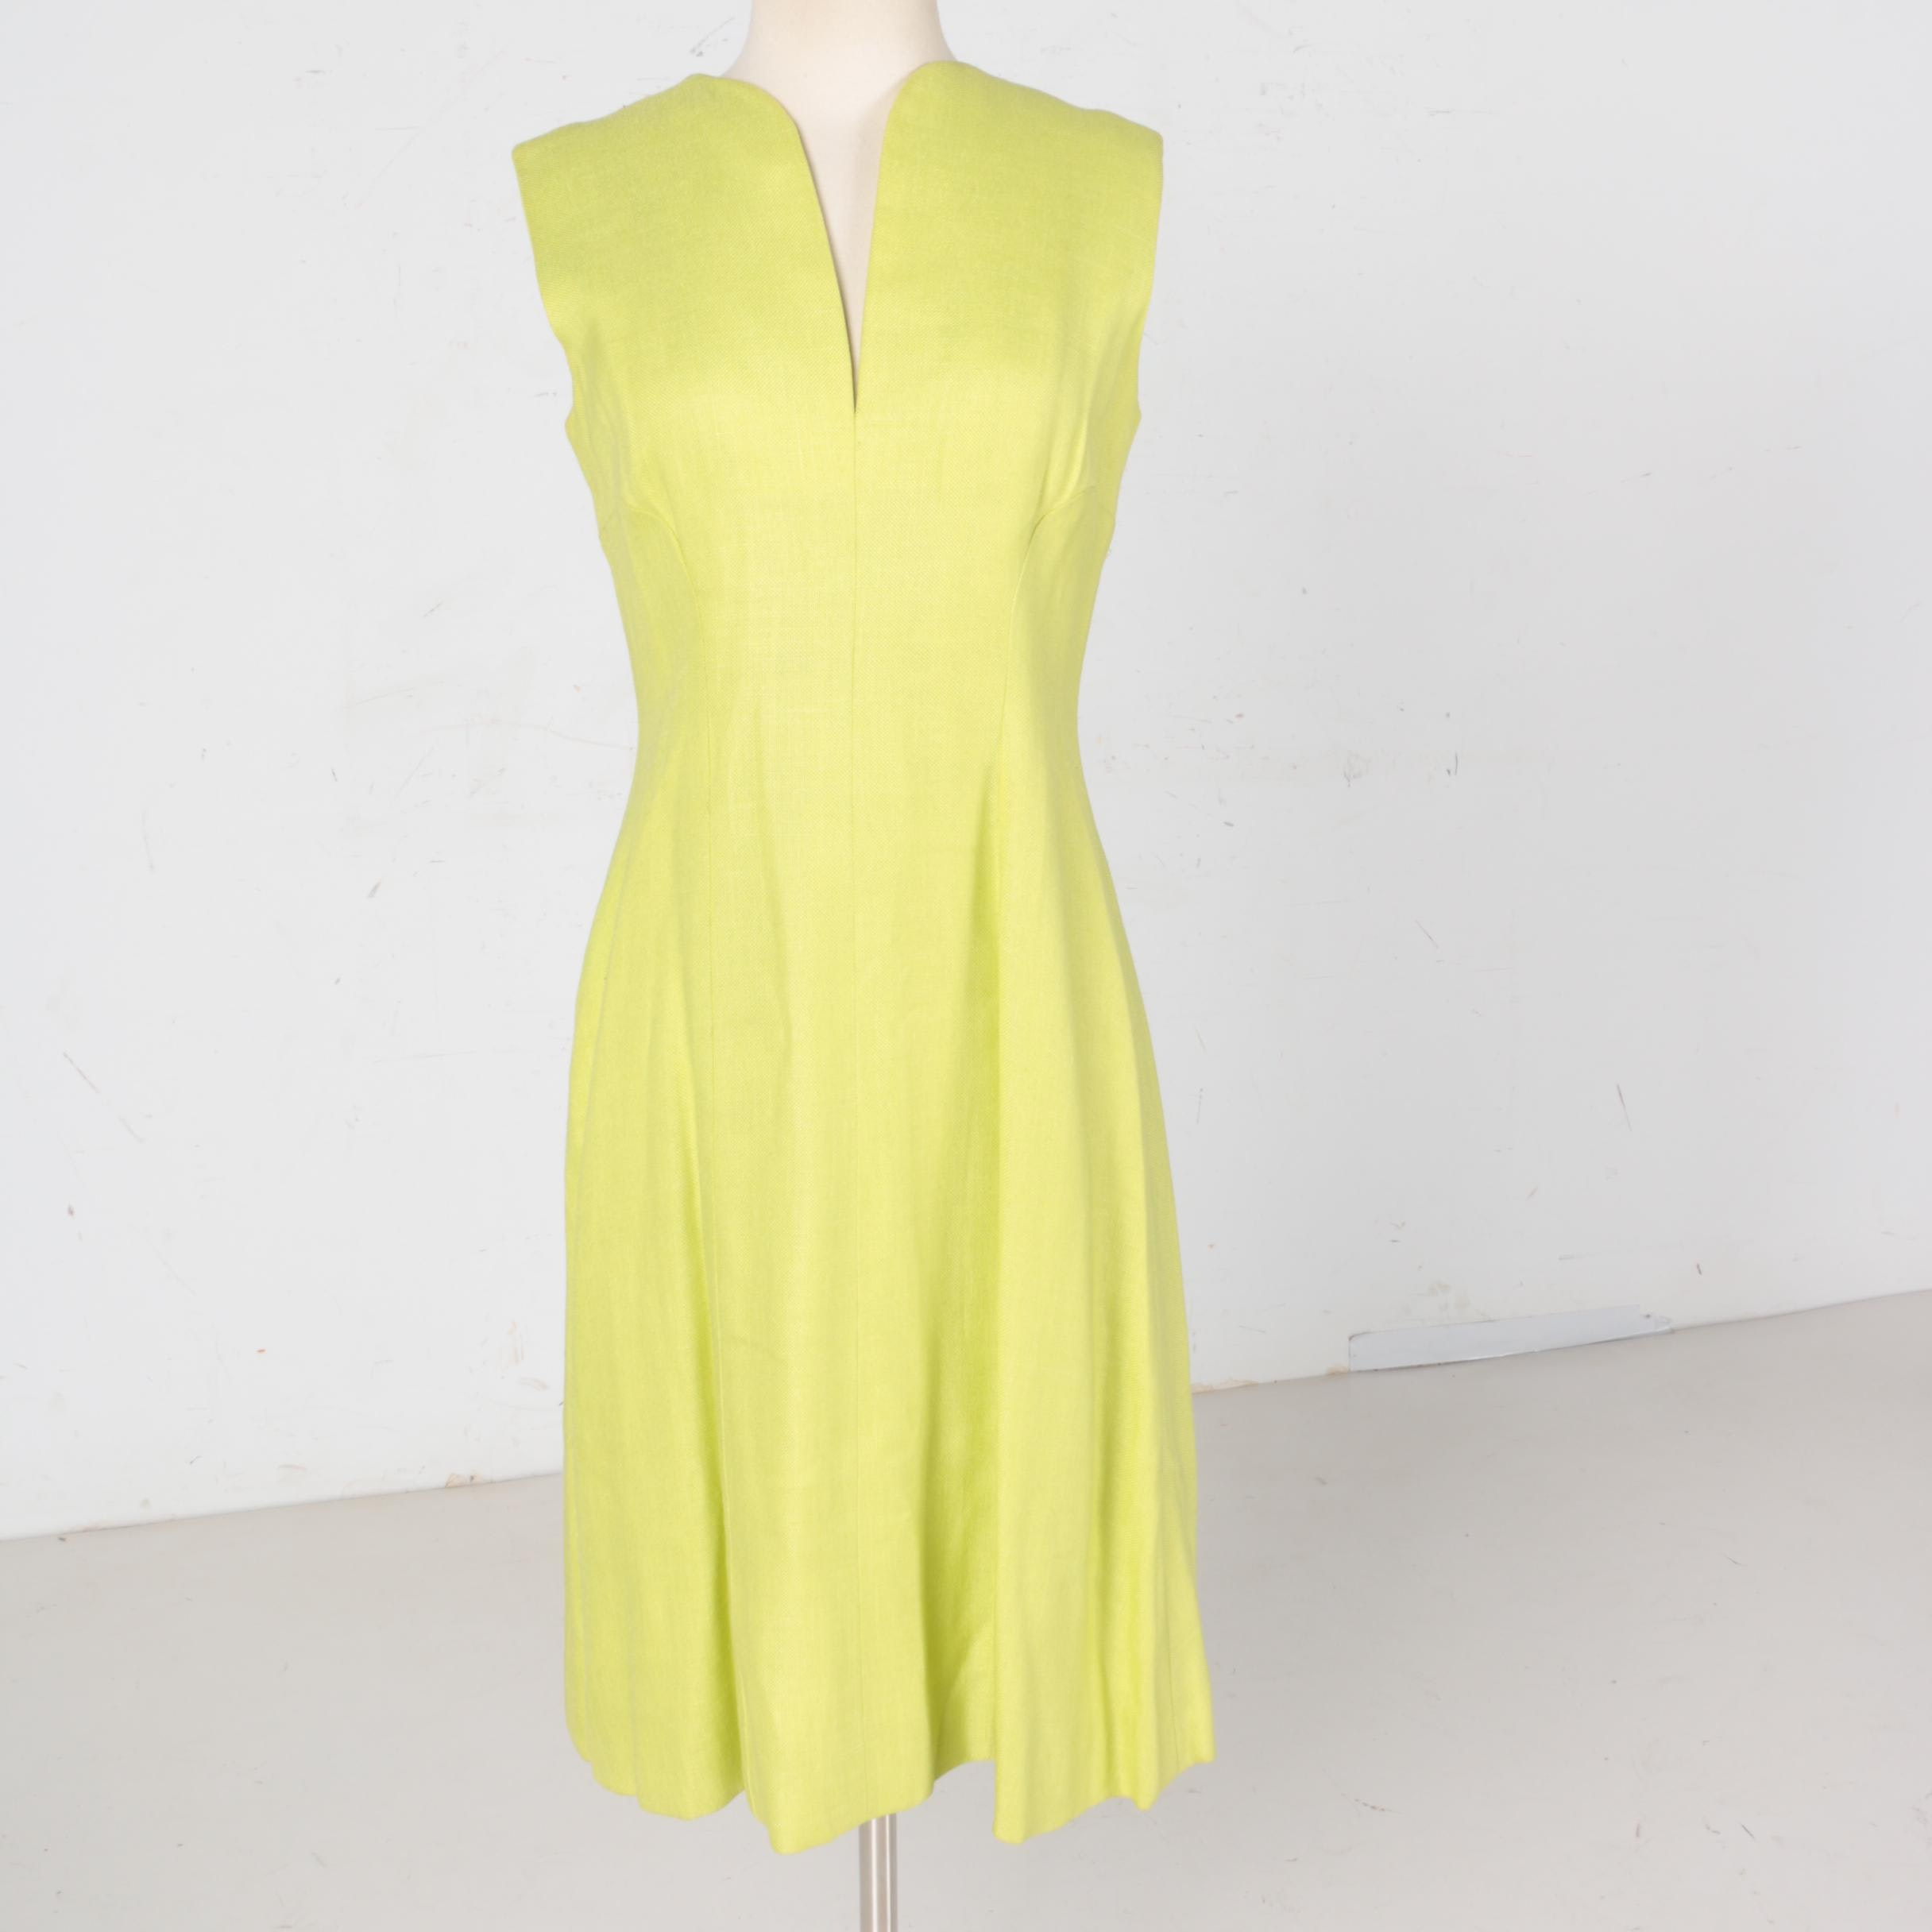 1960s Vintage Pauline Trigere Green Sleeveless Dress